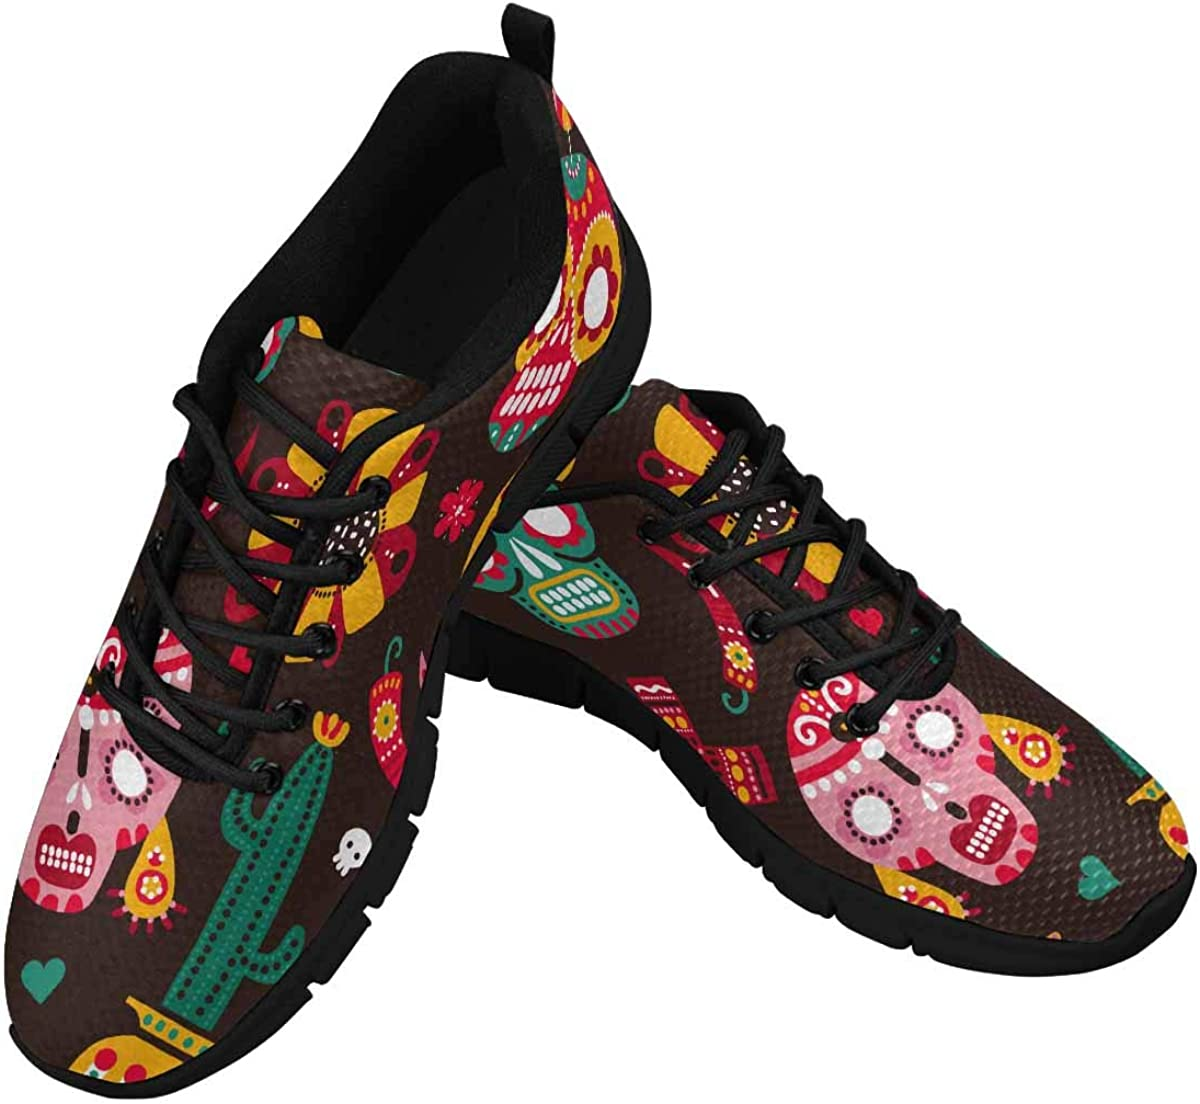 INTERESTPRINT Day of Dead Skulls, Guitar and Llama Women's Athletic Walking Running Sneakers Comfortable Lightweight Shoes